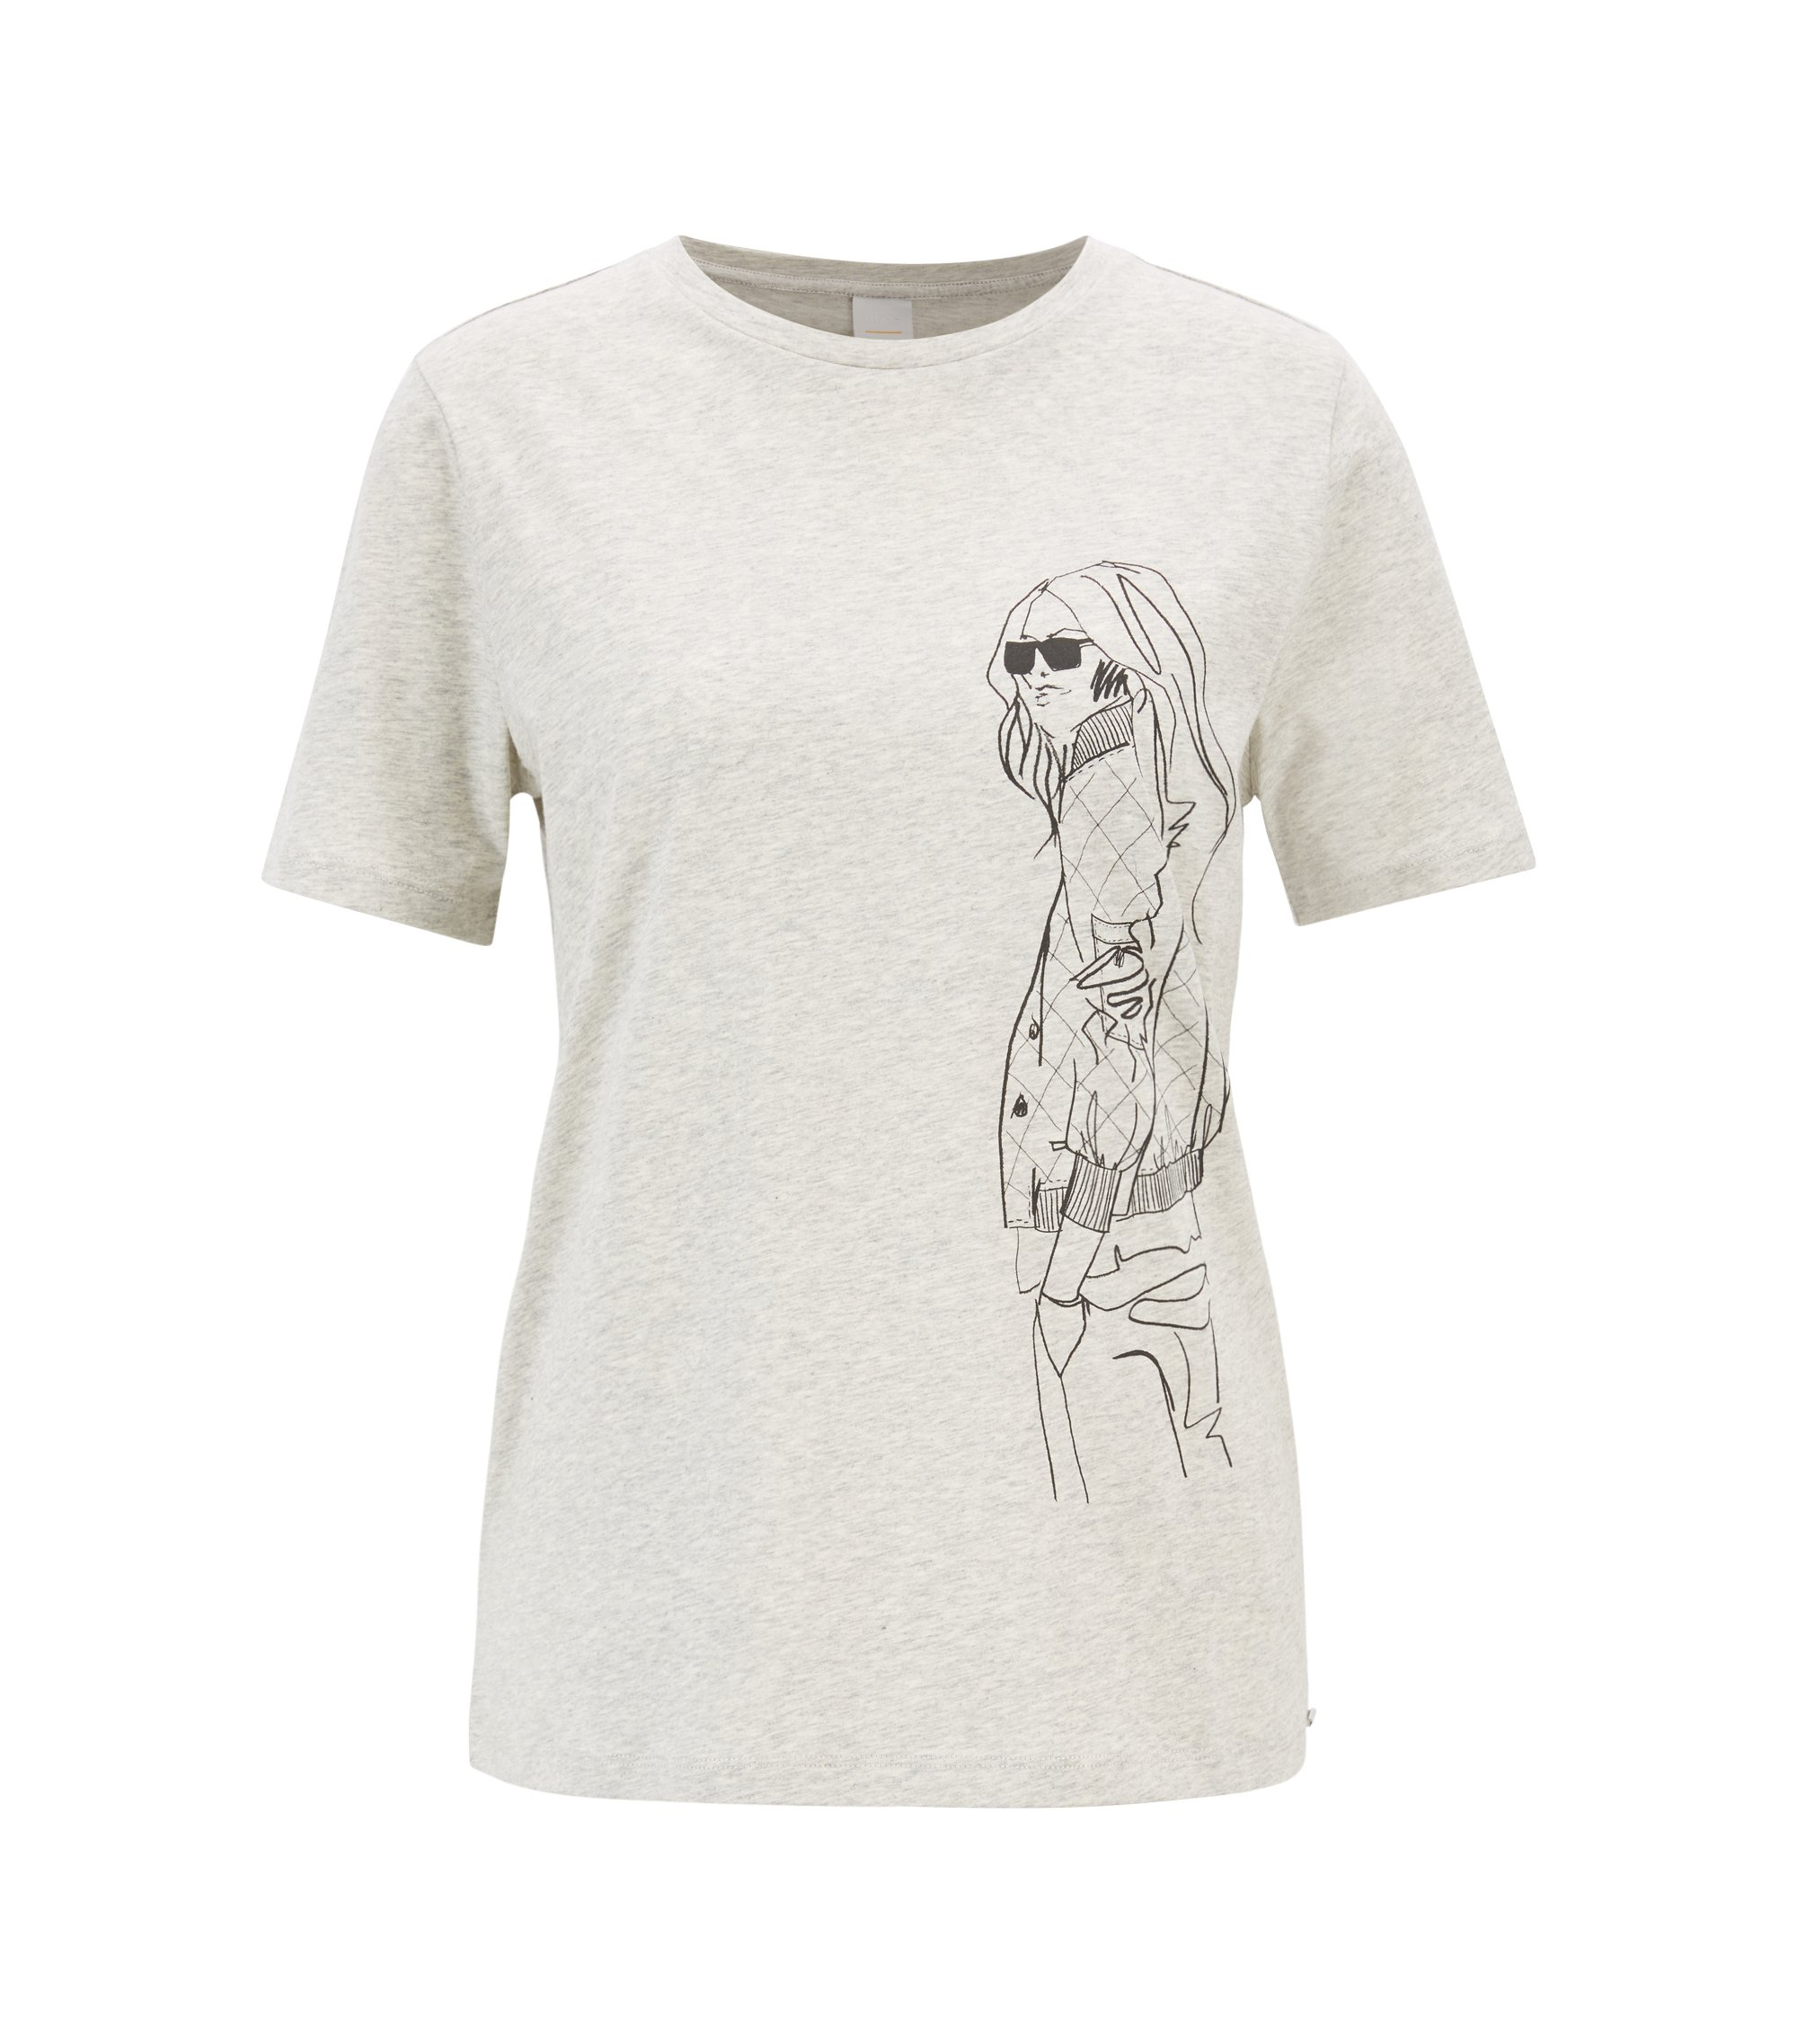 T-shirt Boxy Fit en jersey de coton avec illustration dessinée à la main, Argent